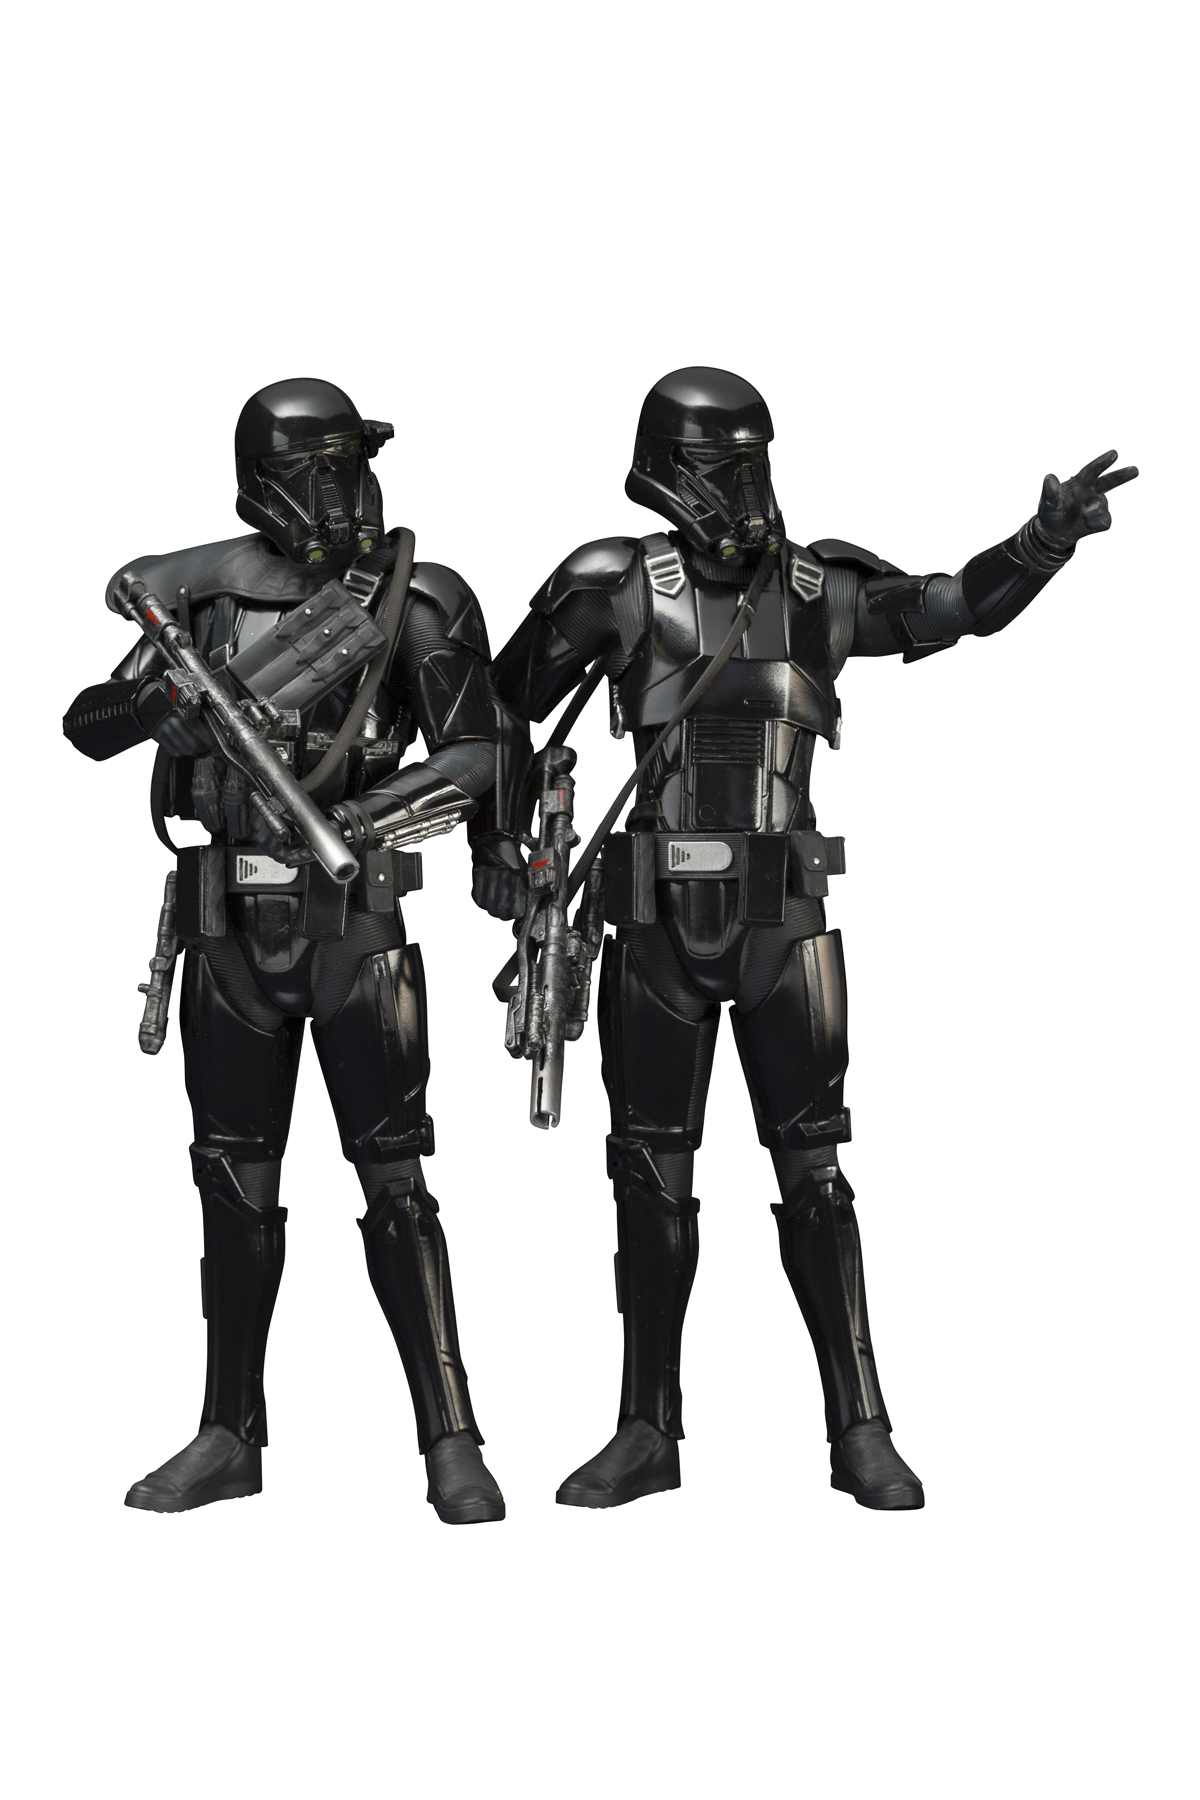 SW R1 DEATH TROOPER ARTFX+ STATUE 2PK